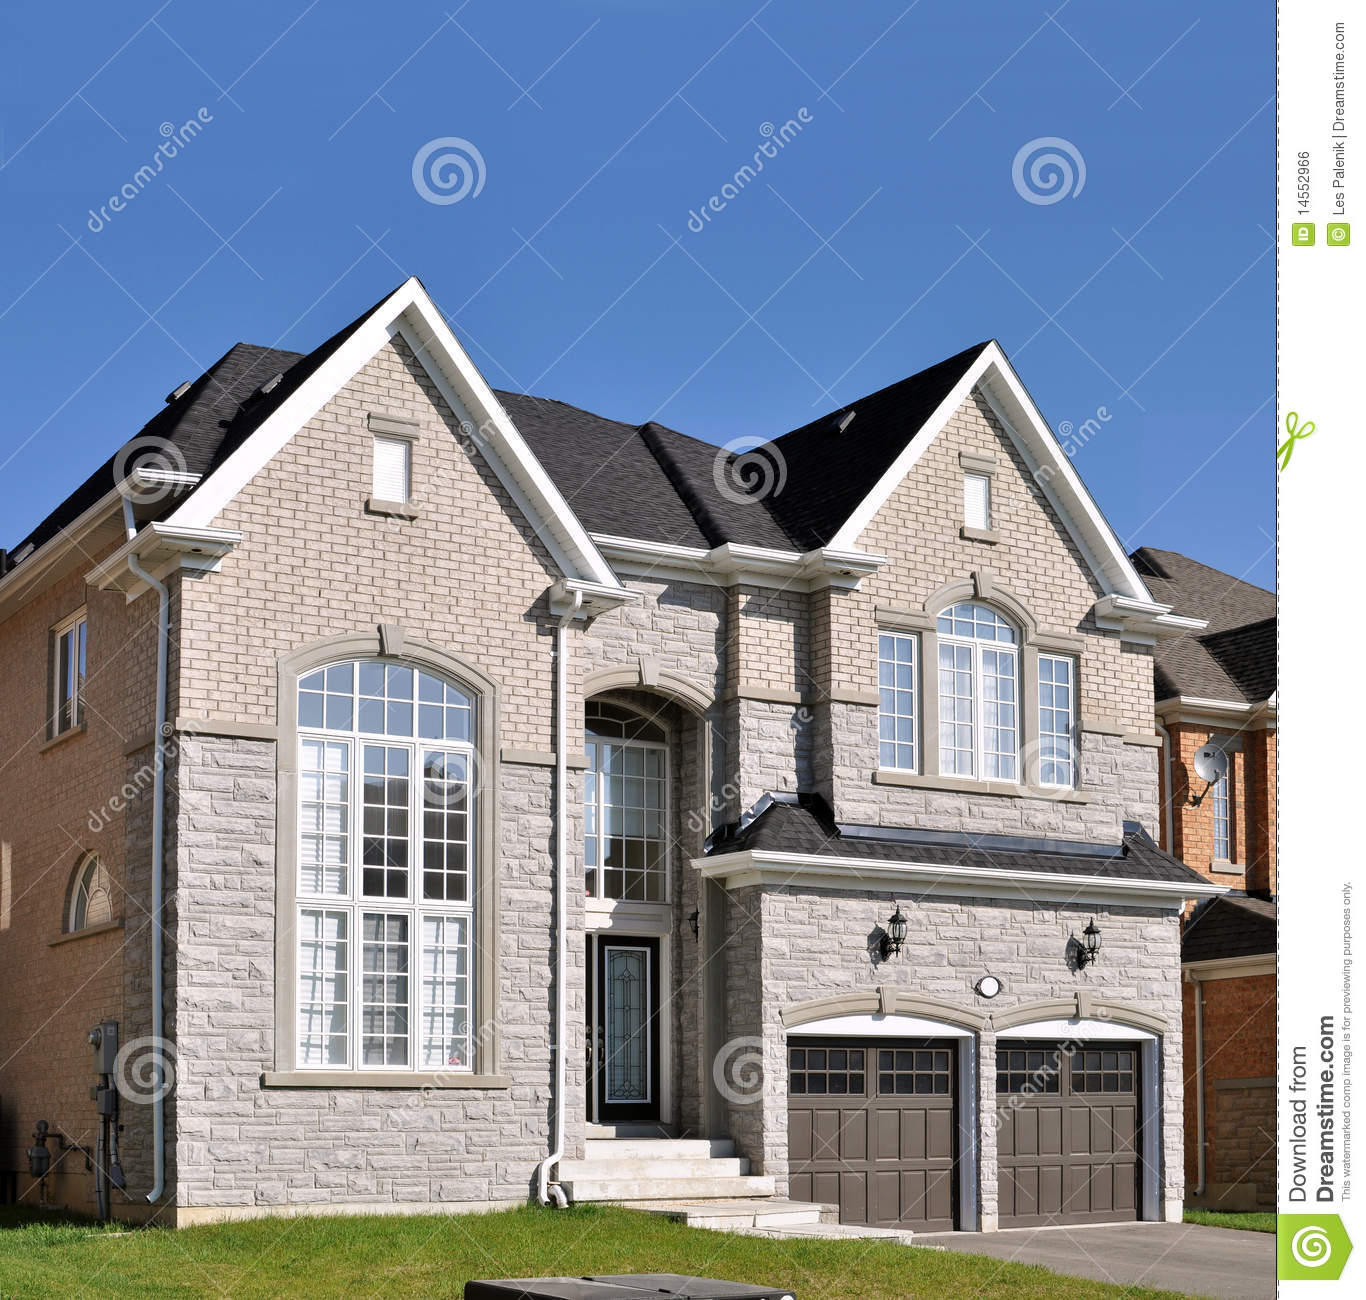 New Brick Homes: New Brick House With A Double Garage Stock Photo